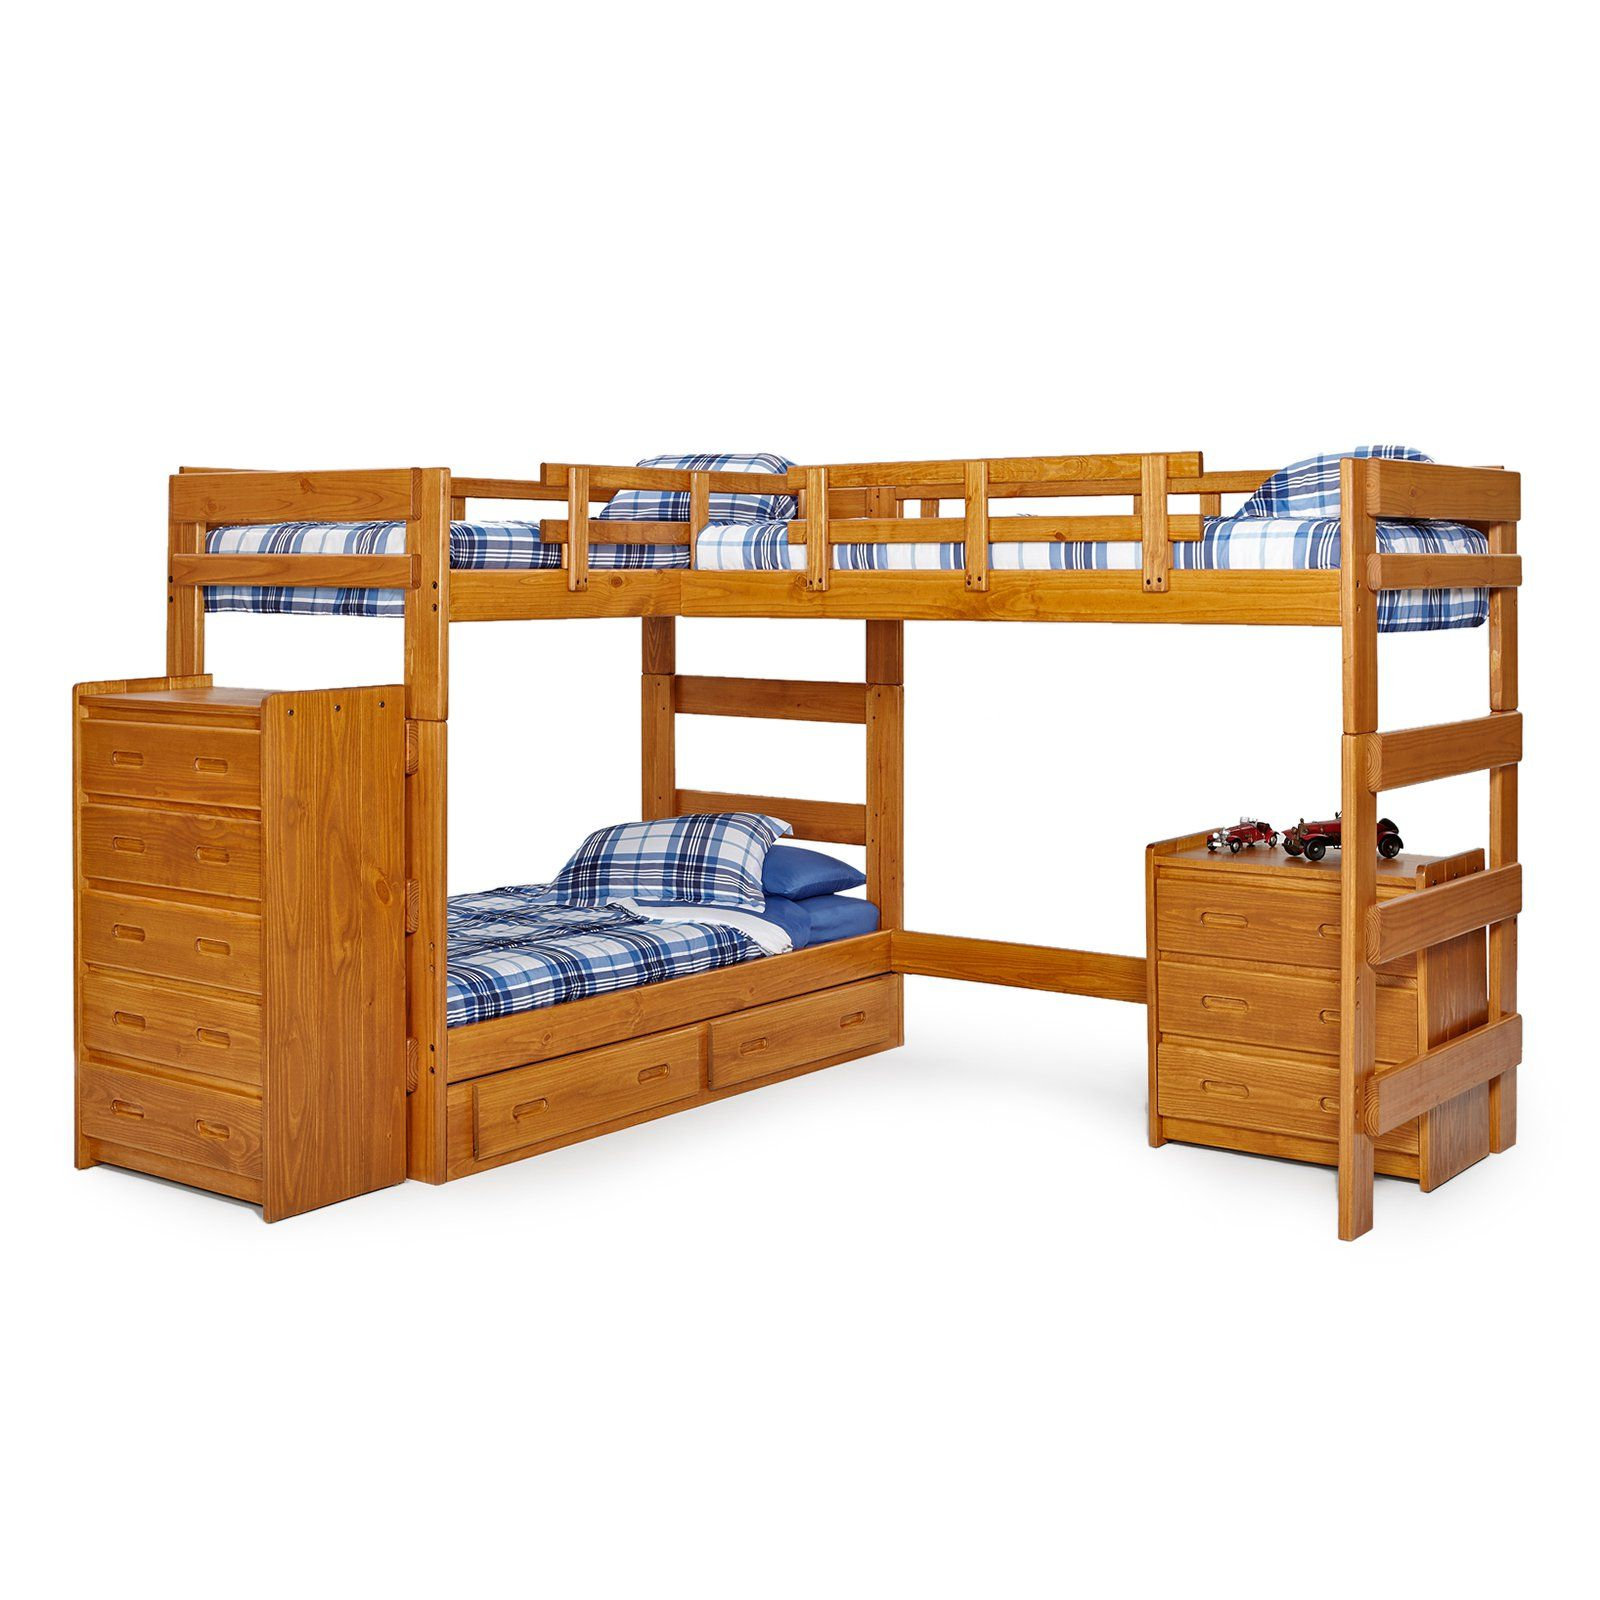 Woodcrest Heartland LShape Twin Loft Bed with Extra Loft